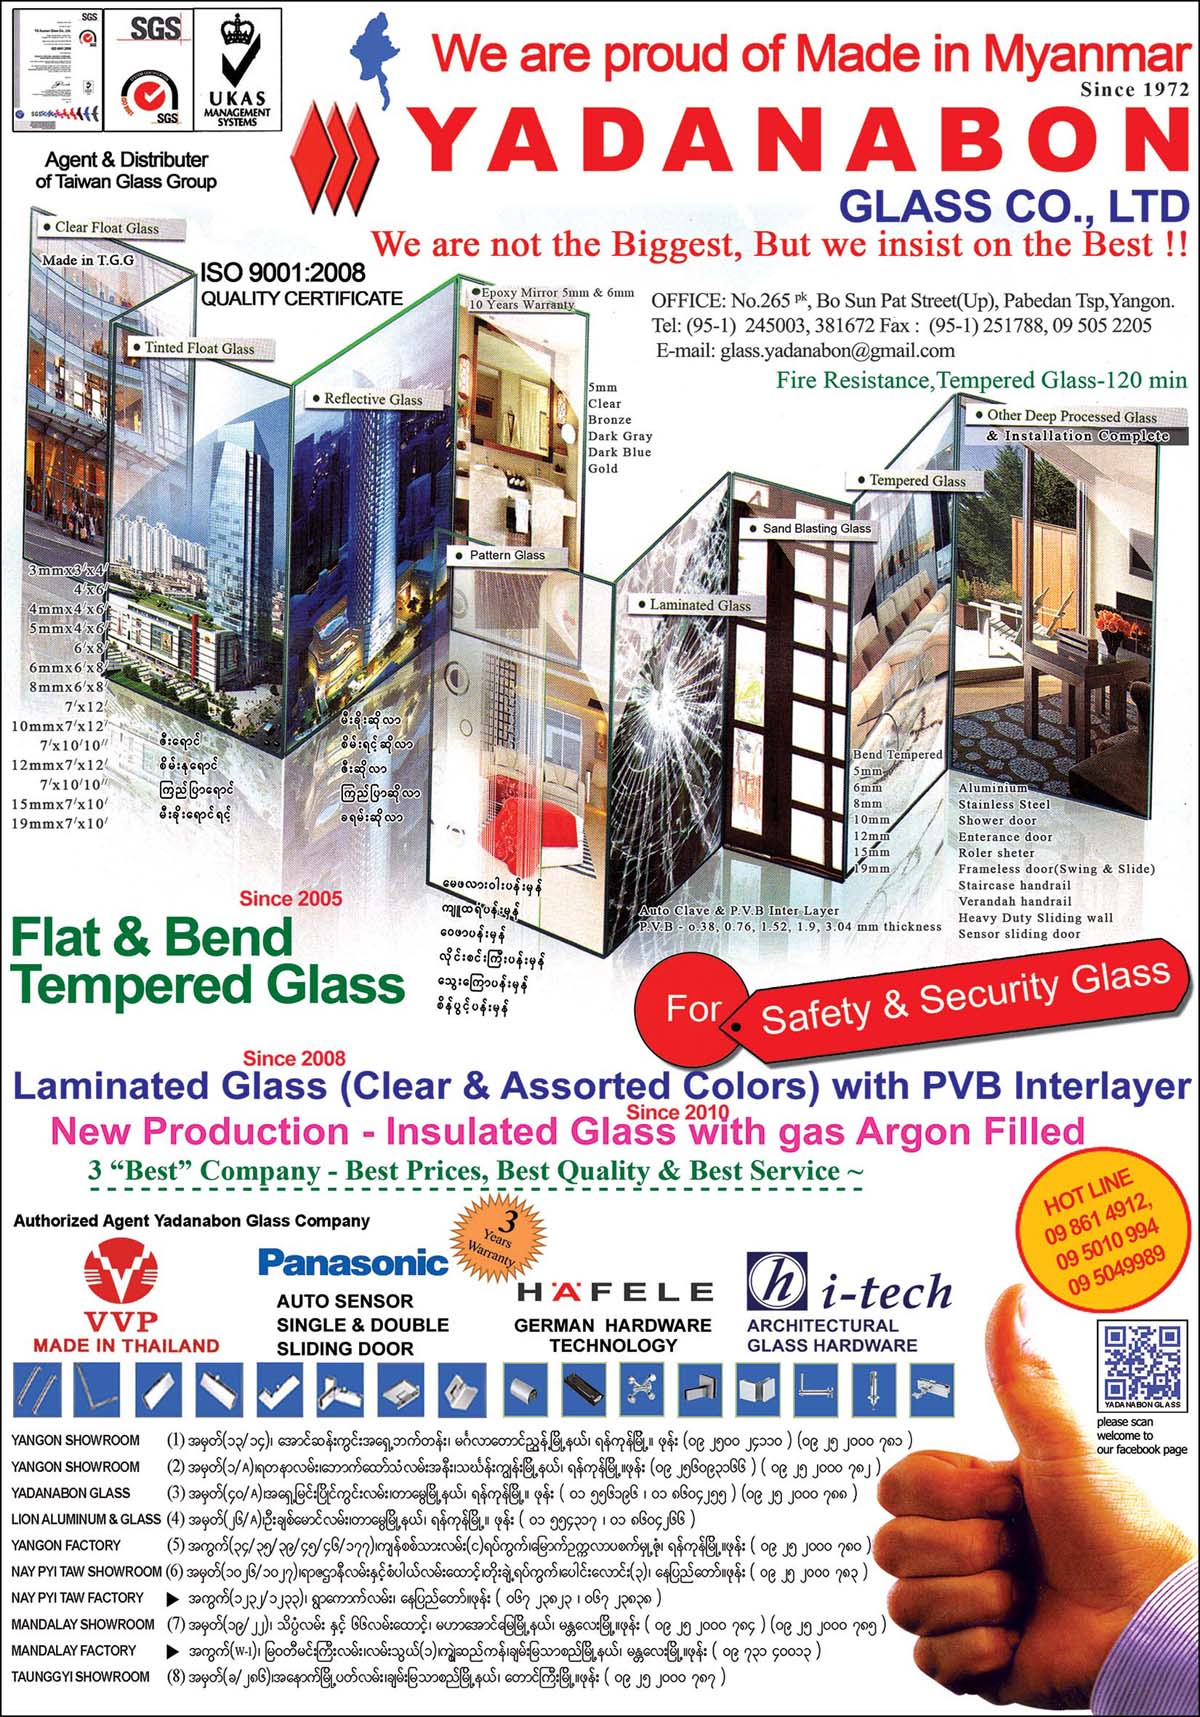 Yadanabon Glass Co., Ltd.